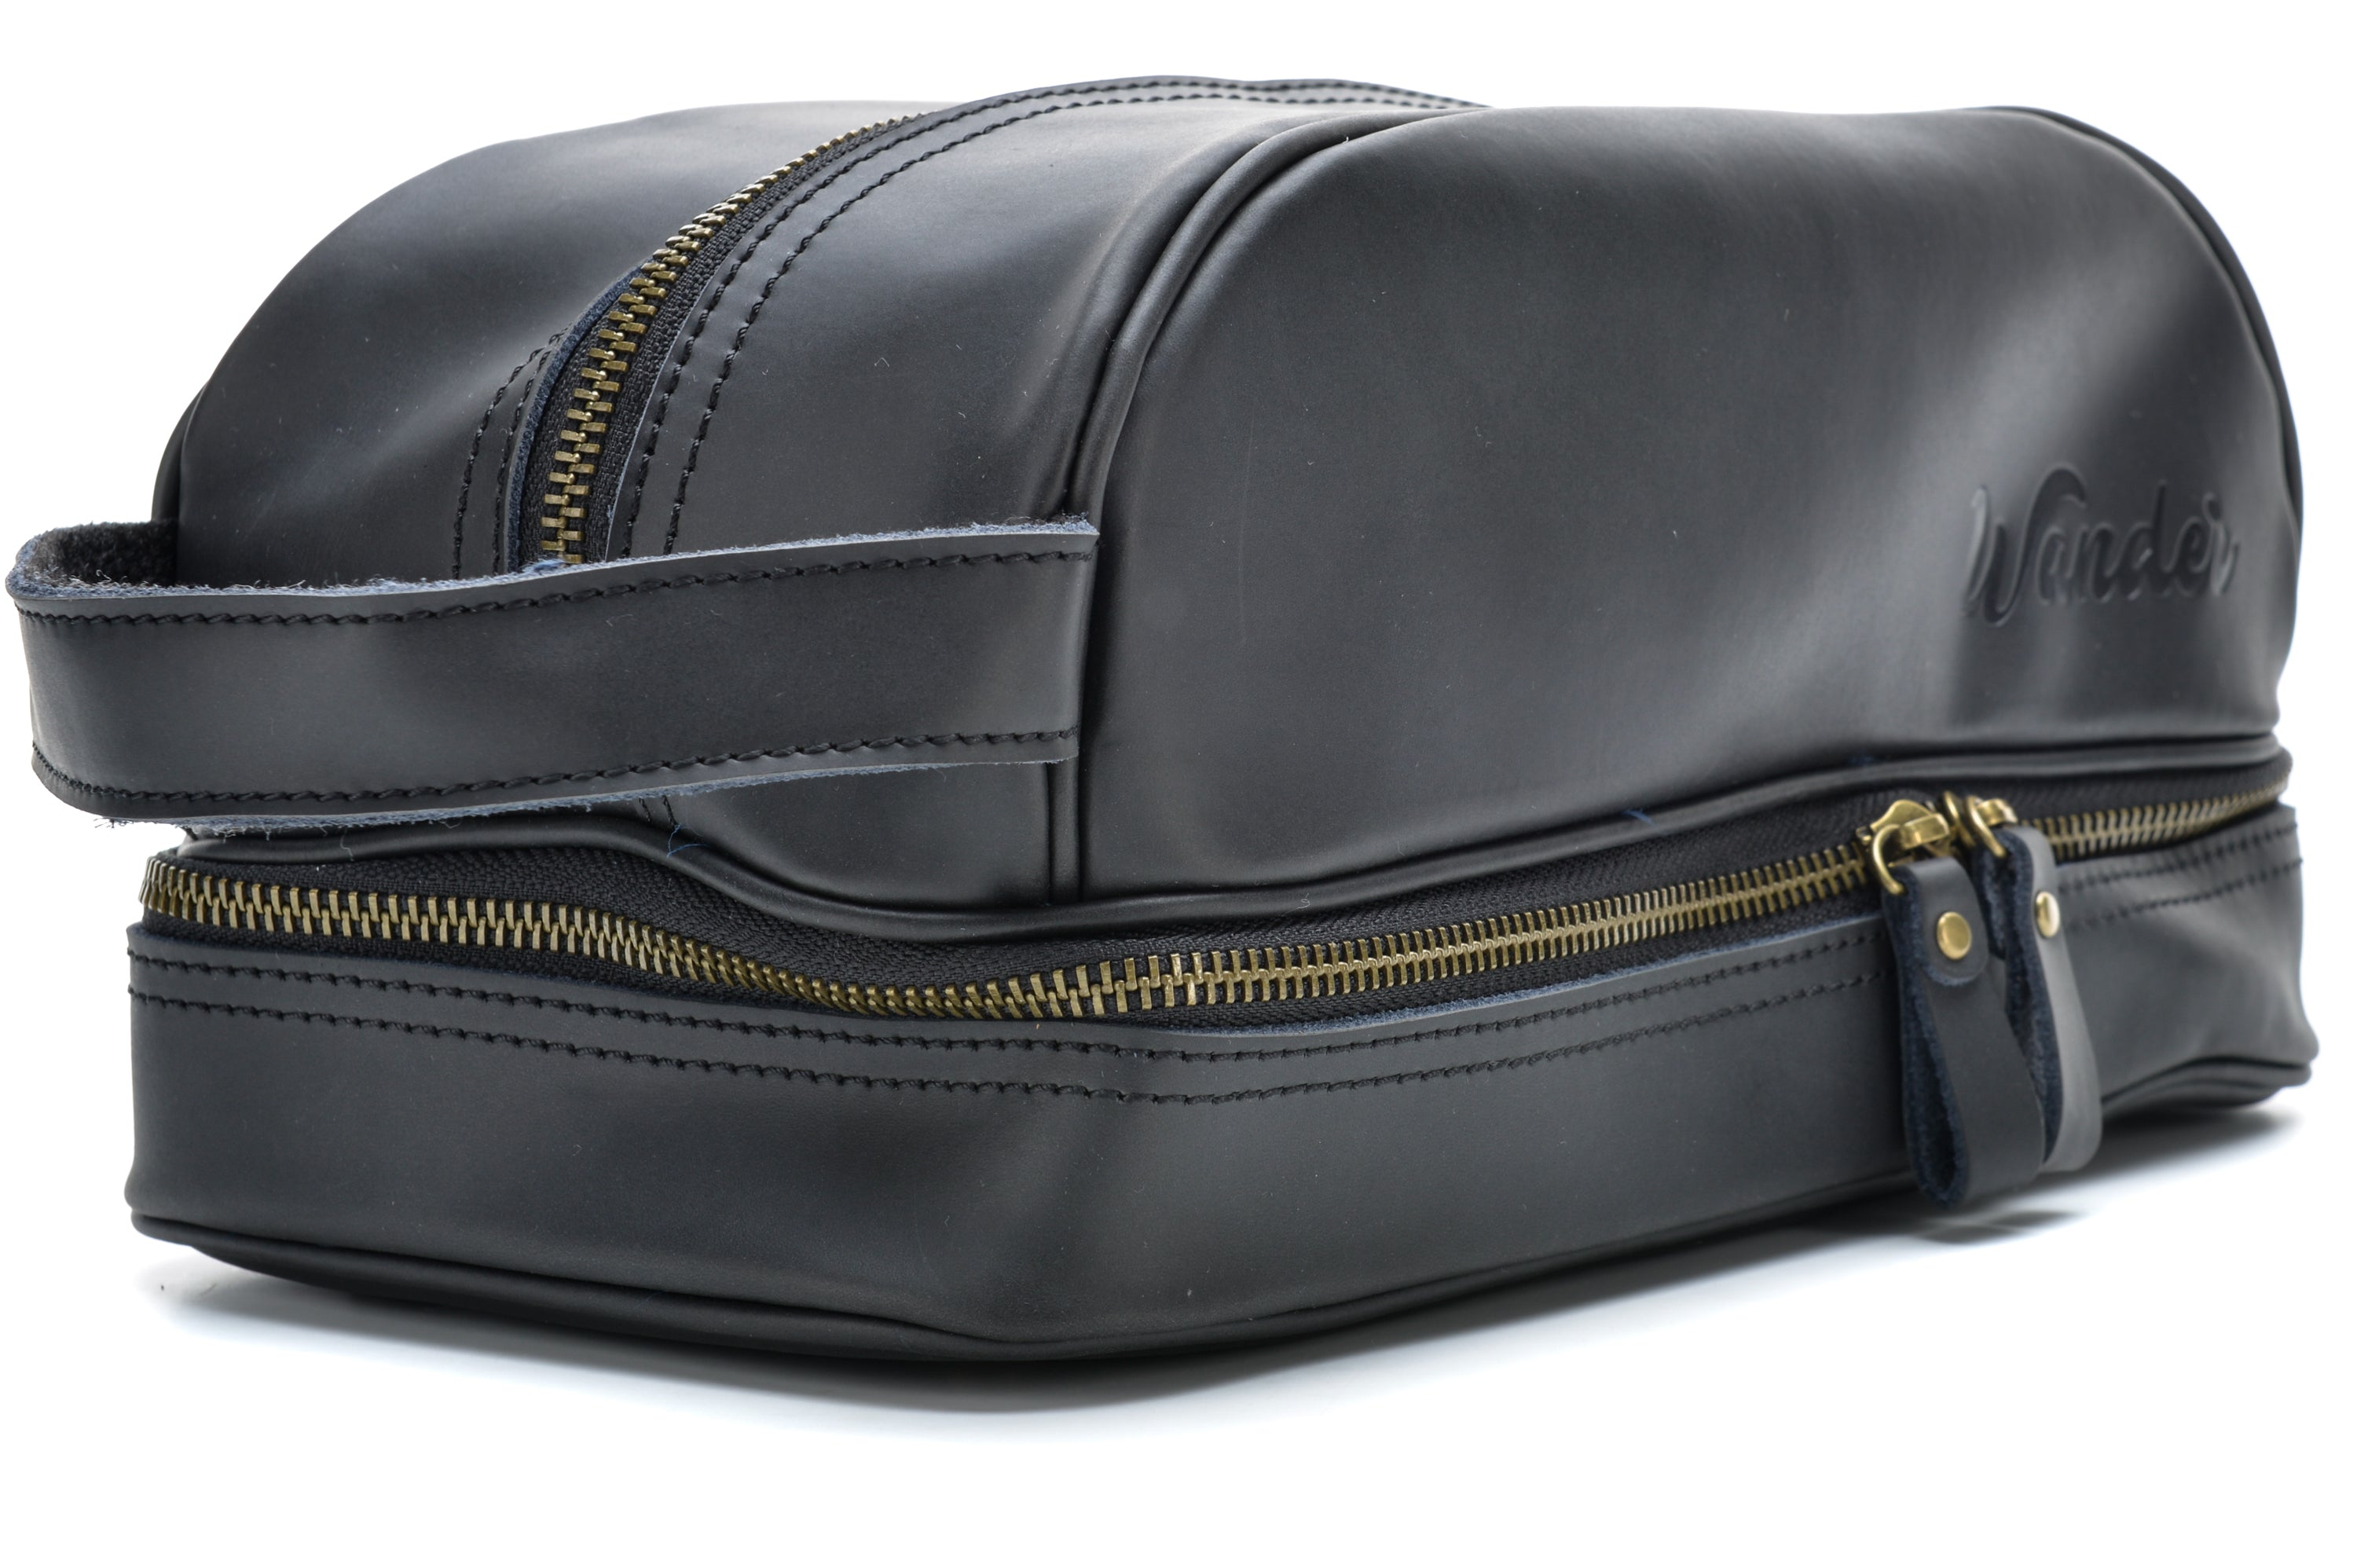 Black Toiletry Bag colorway - Wander Travel and Supply fde4982cb7deb